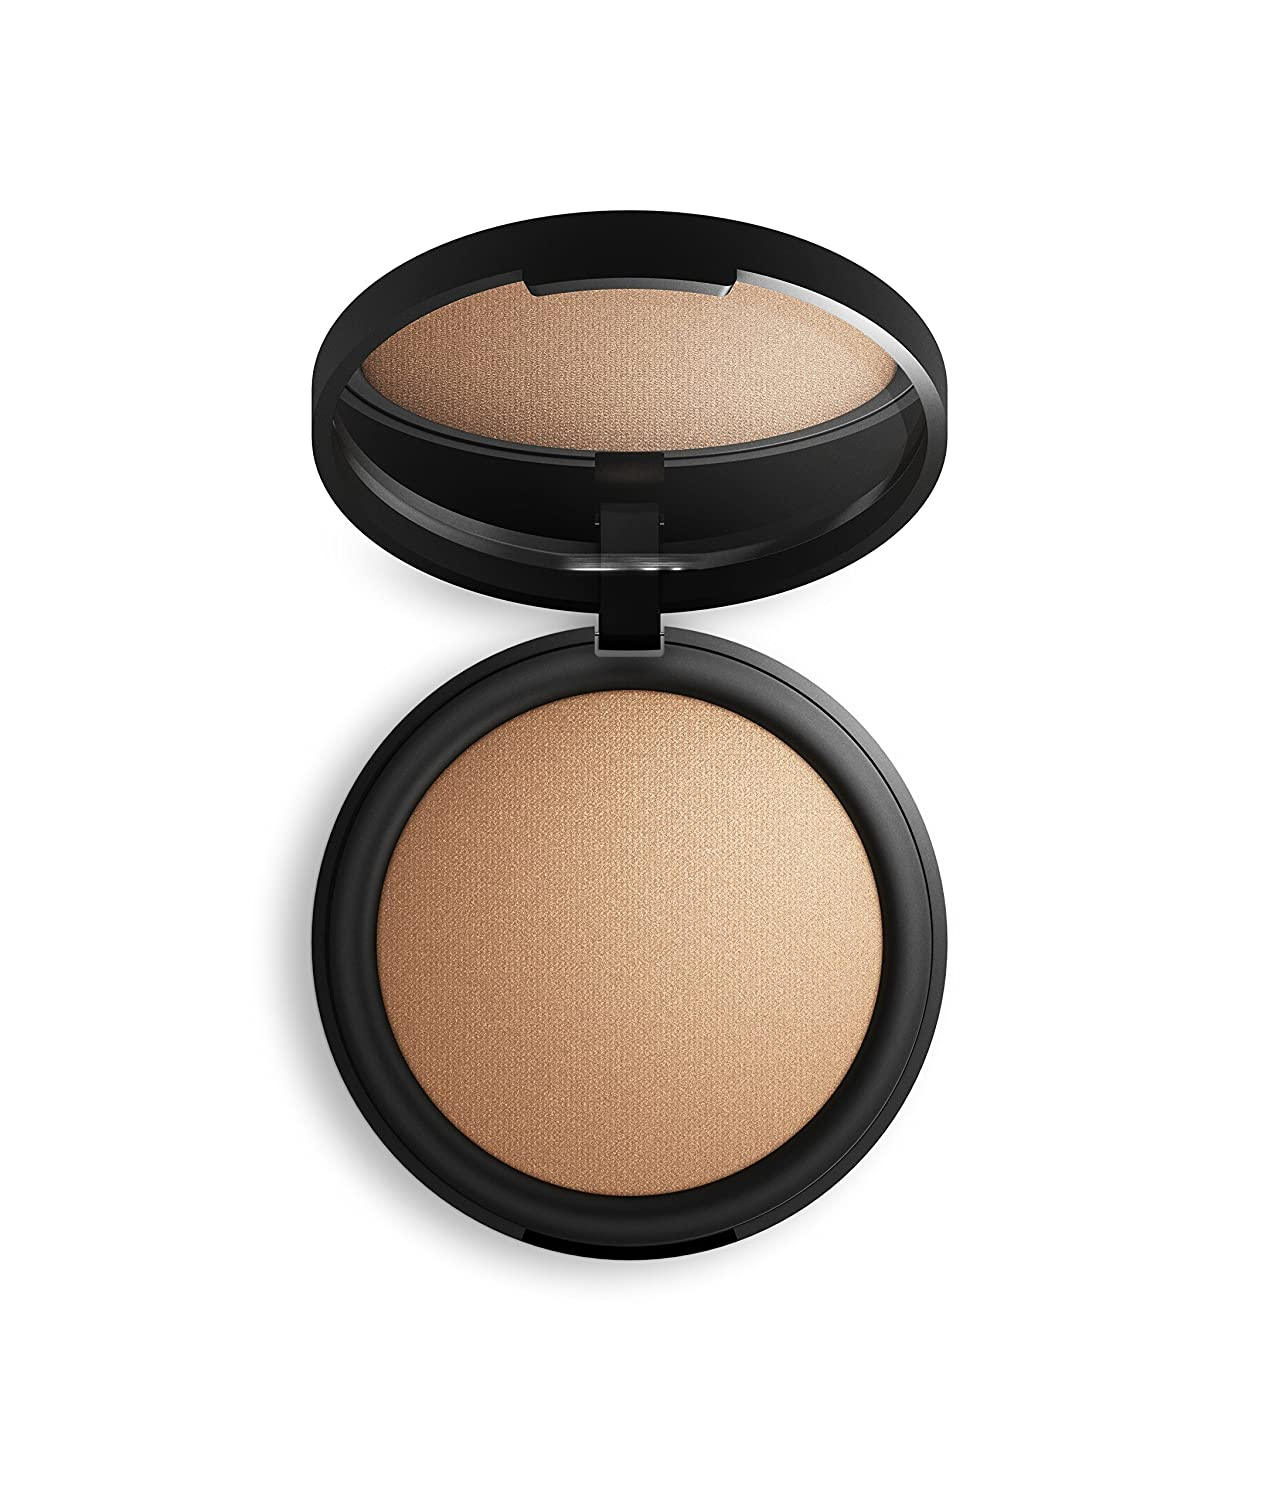 Inika, cotto minerale Bronzer, Sunkissed Total Beauty Network P/L NBZB0007